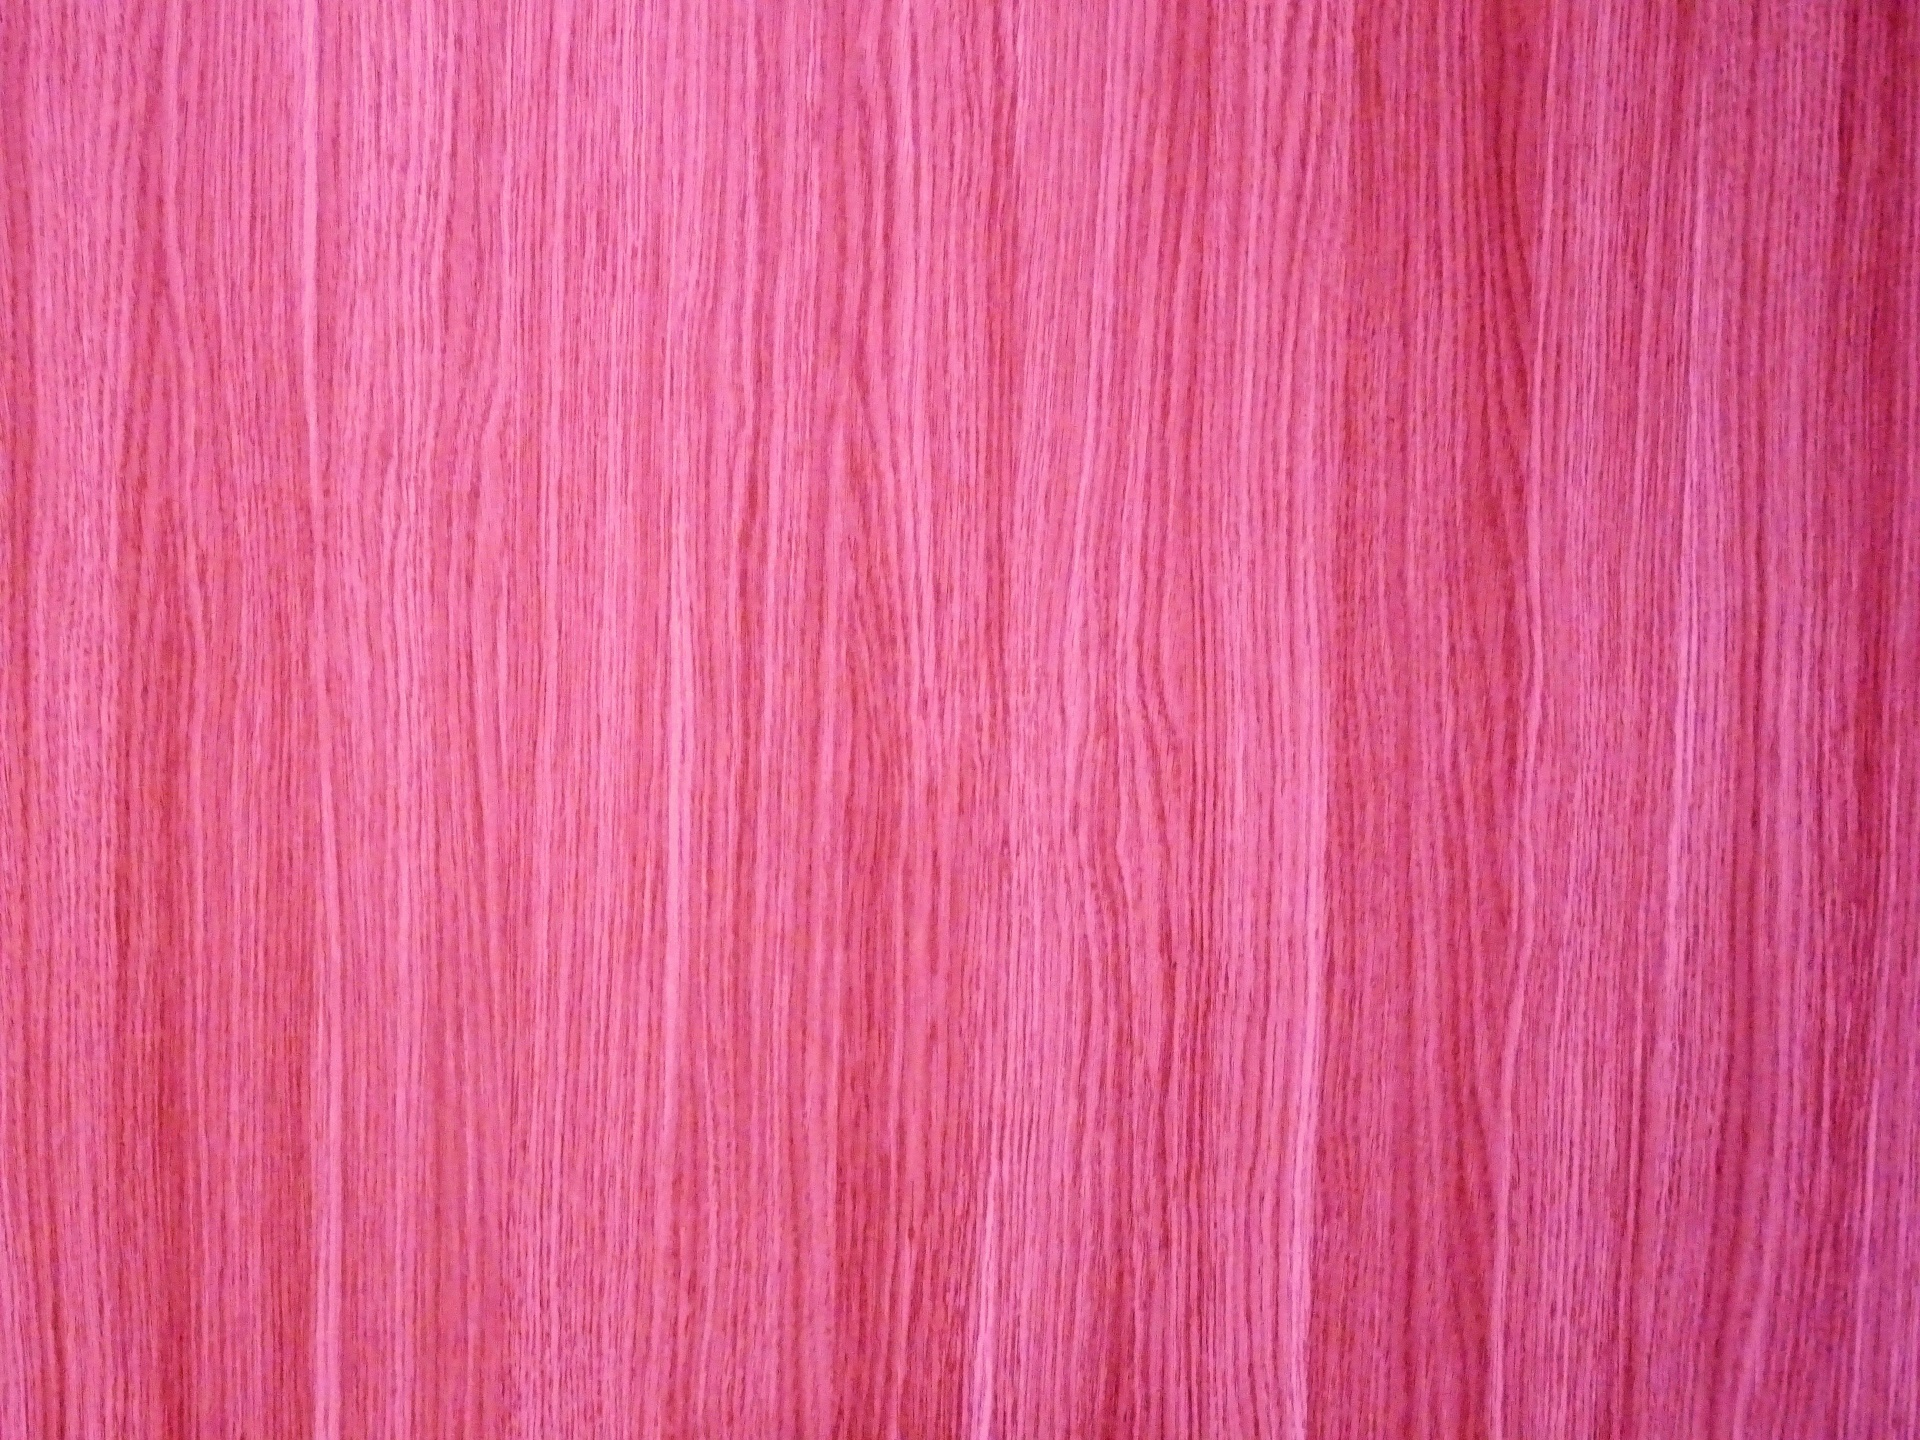 Wallpaper Hd Floral Pink Wood Grain Background Free Stock Photo Public